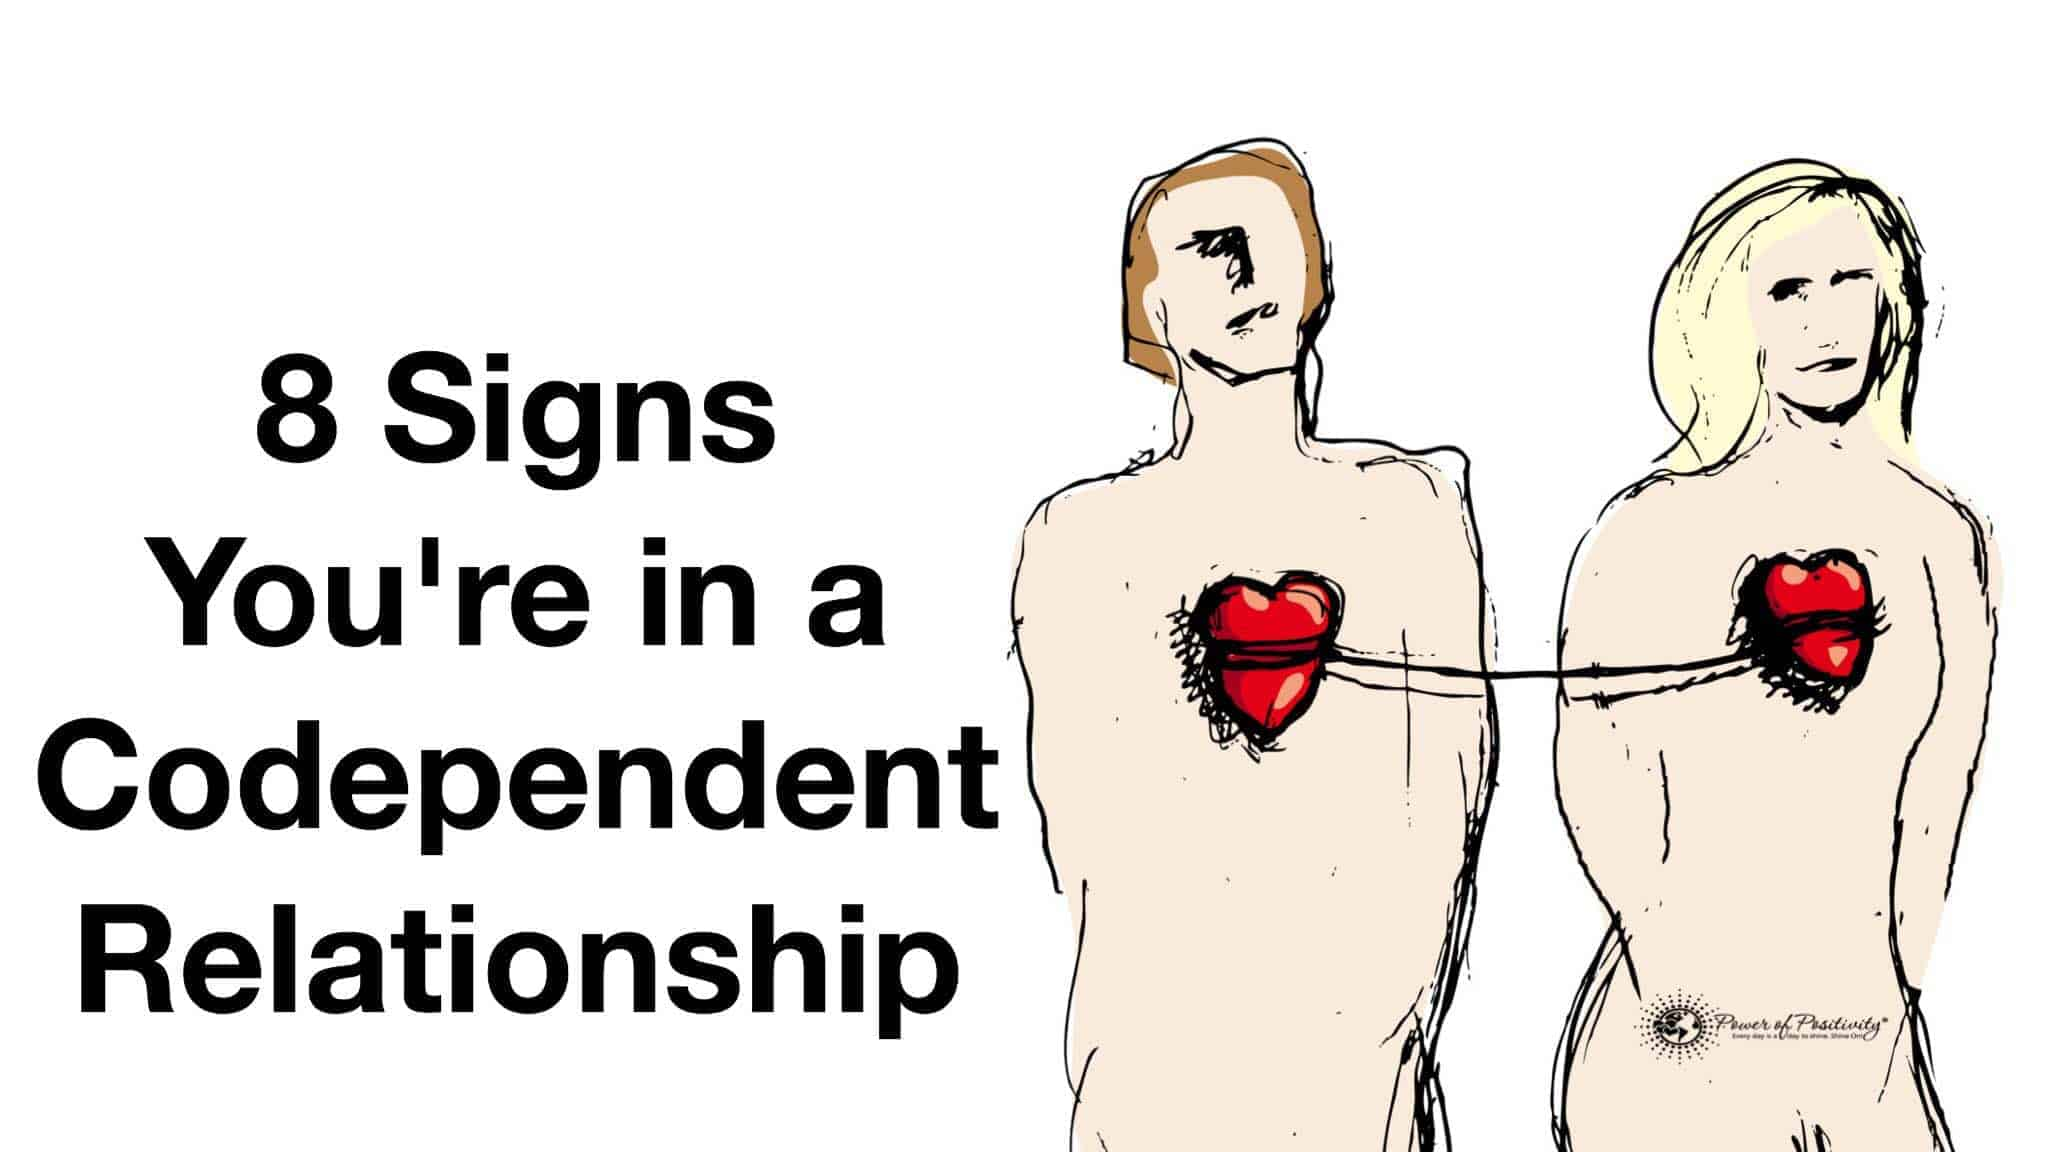 How do you know if you are codependent